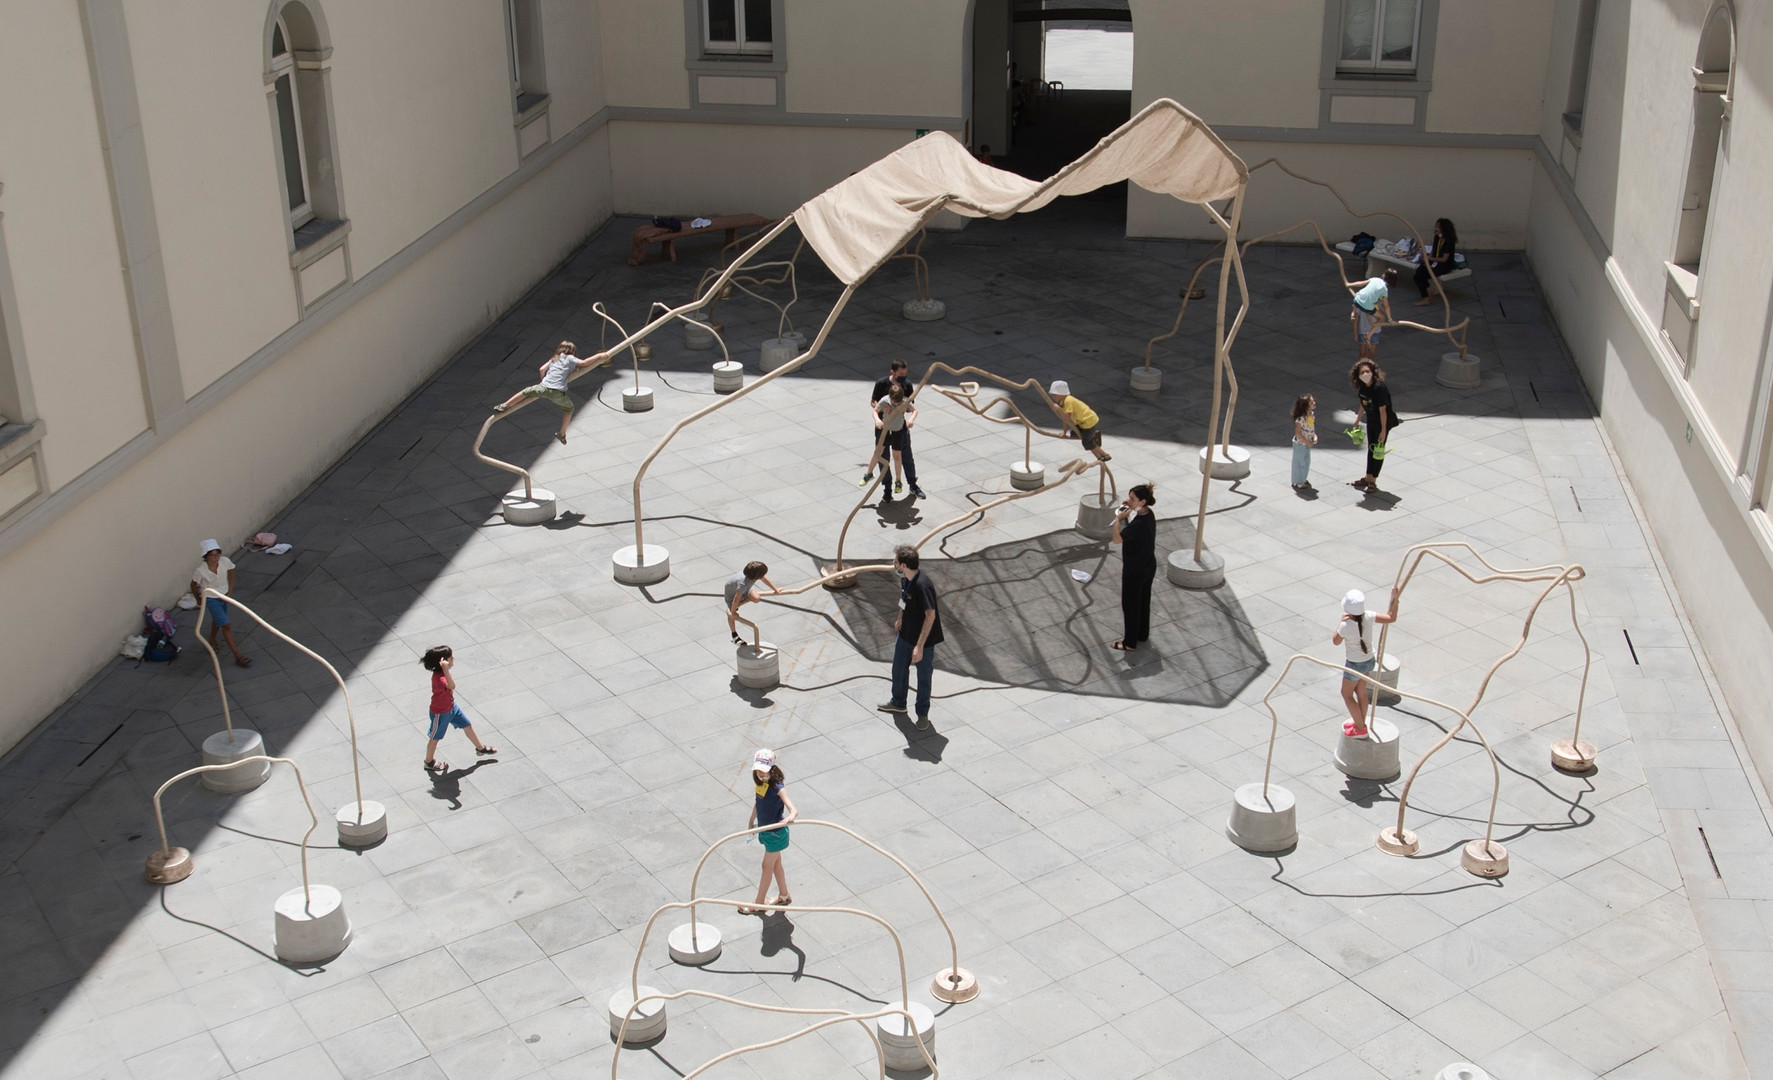 Temitayo Ogunbiyi, 2020, You will play in the everyday, running,  acier, métal, béton, dimensions variables. Museo Madre, Naples (commissariat d'exposition: Kathryn Weir)